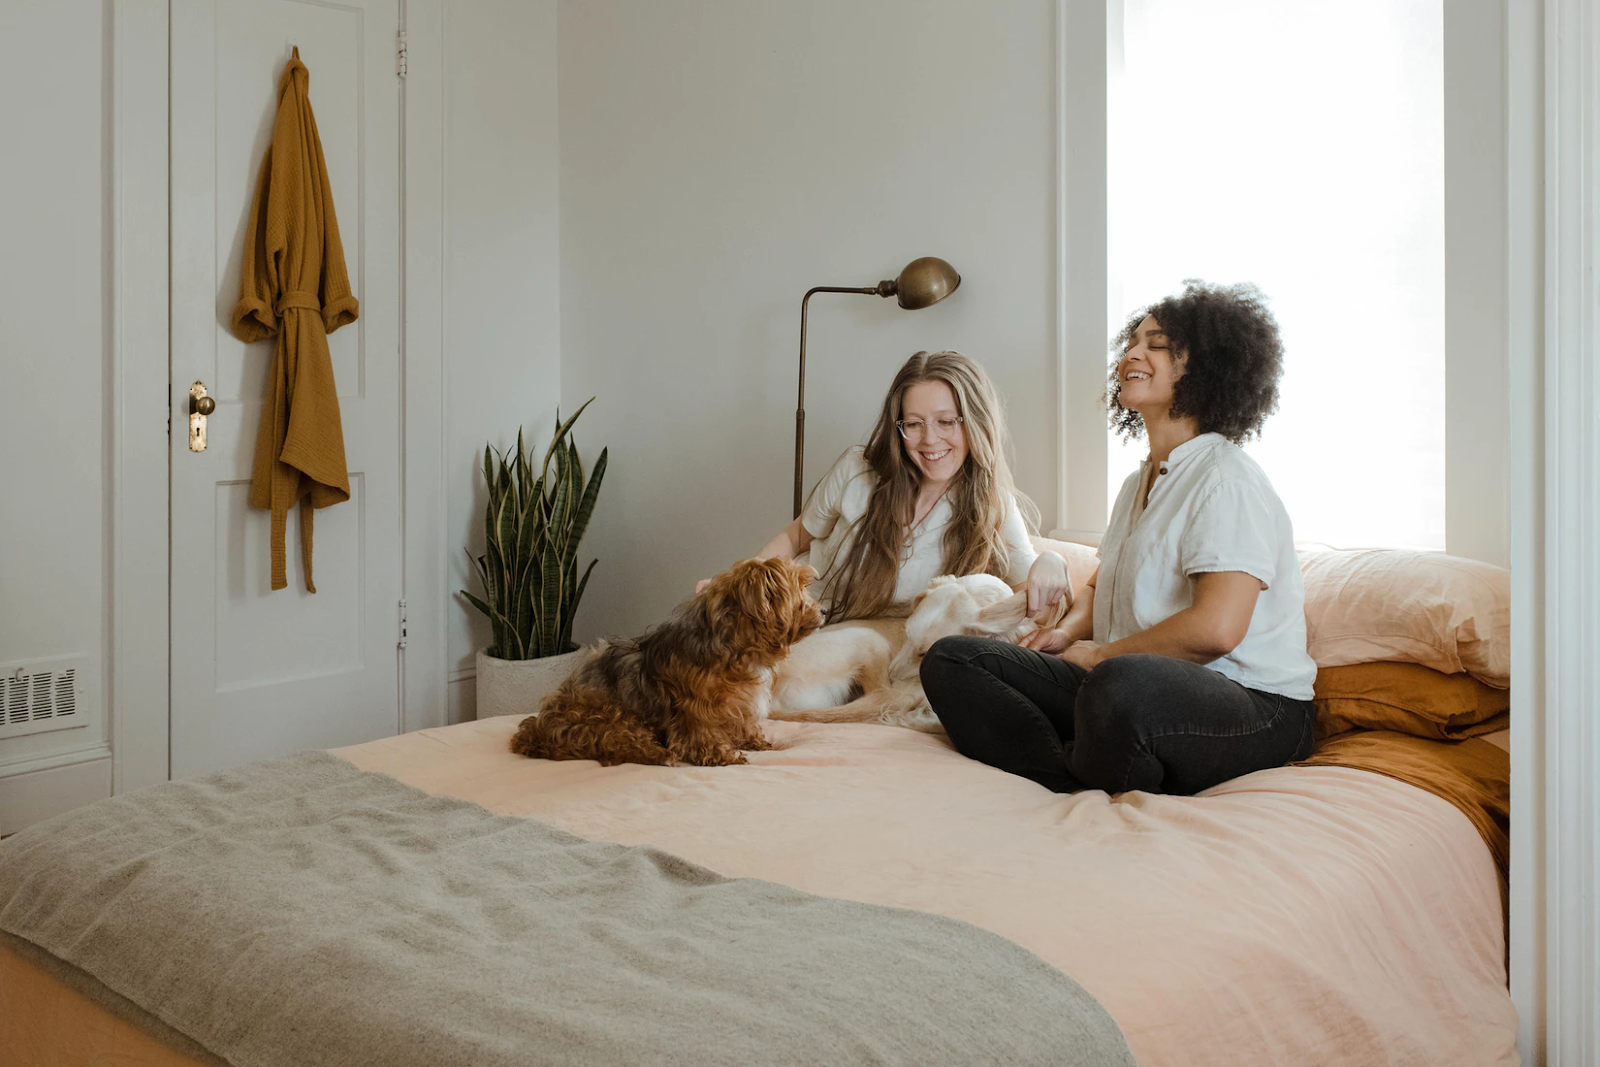 An image of two women sitting on a bed and laughing. One of them is petting a dog that sits beside them.